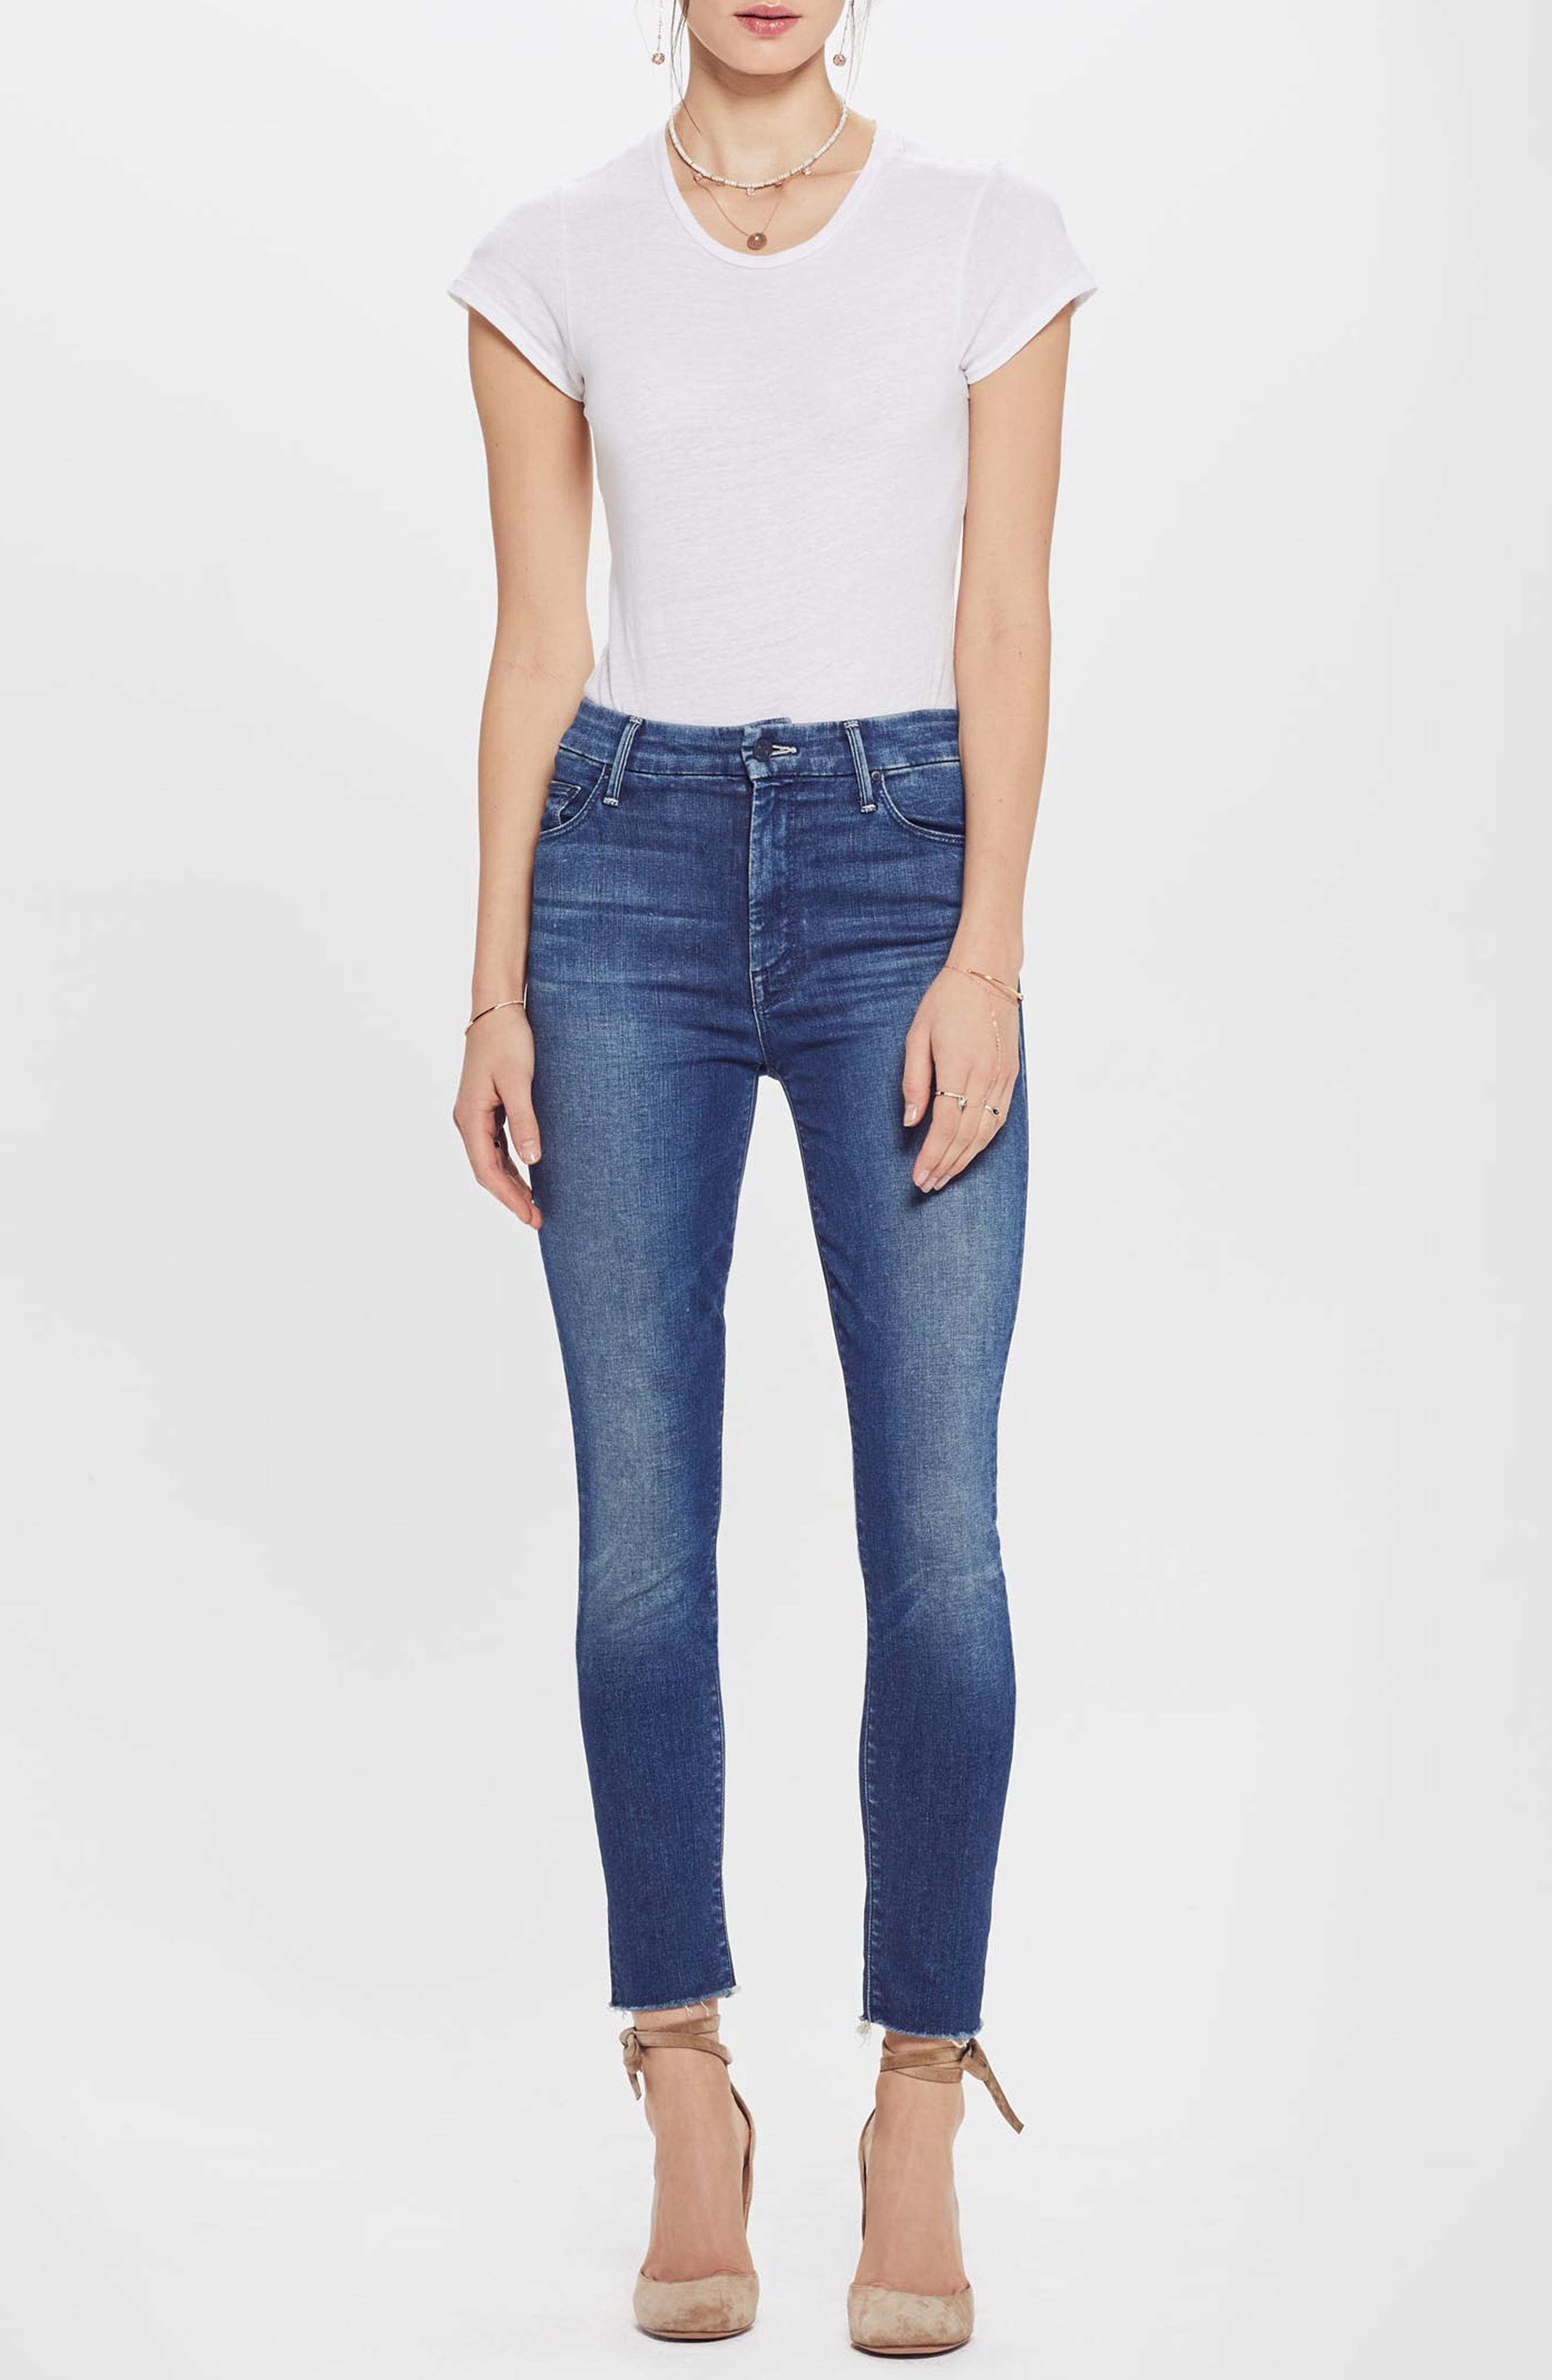 MOTHER, The Looker High Waist Frayed Ankle Skinny Jeans, Alternate thumbnail 4, color, LURE ME IN